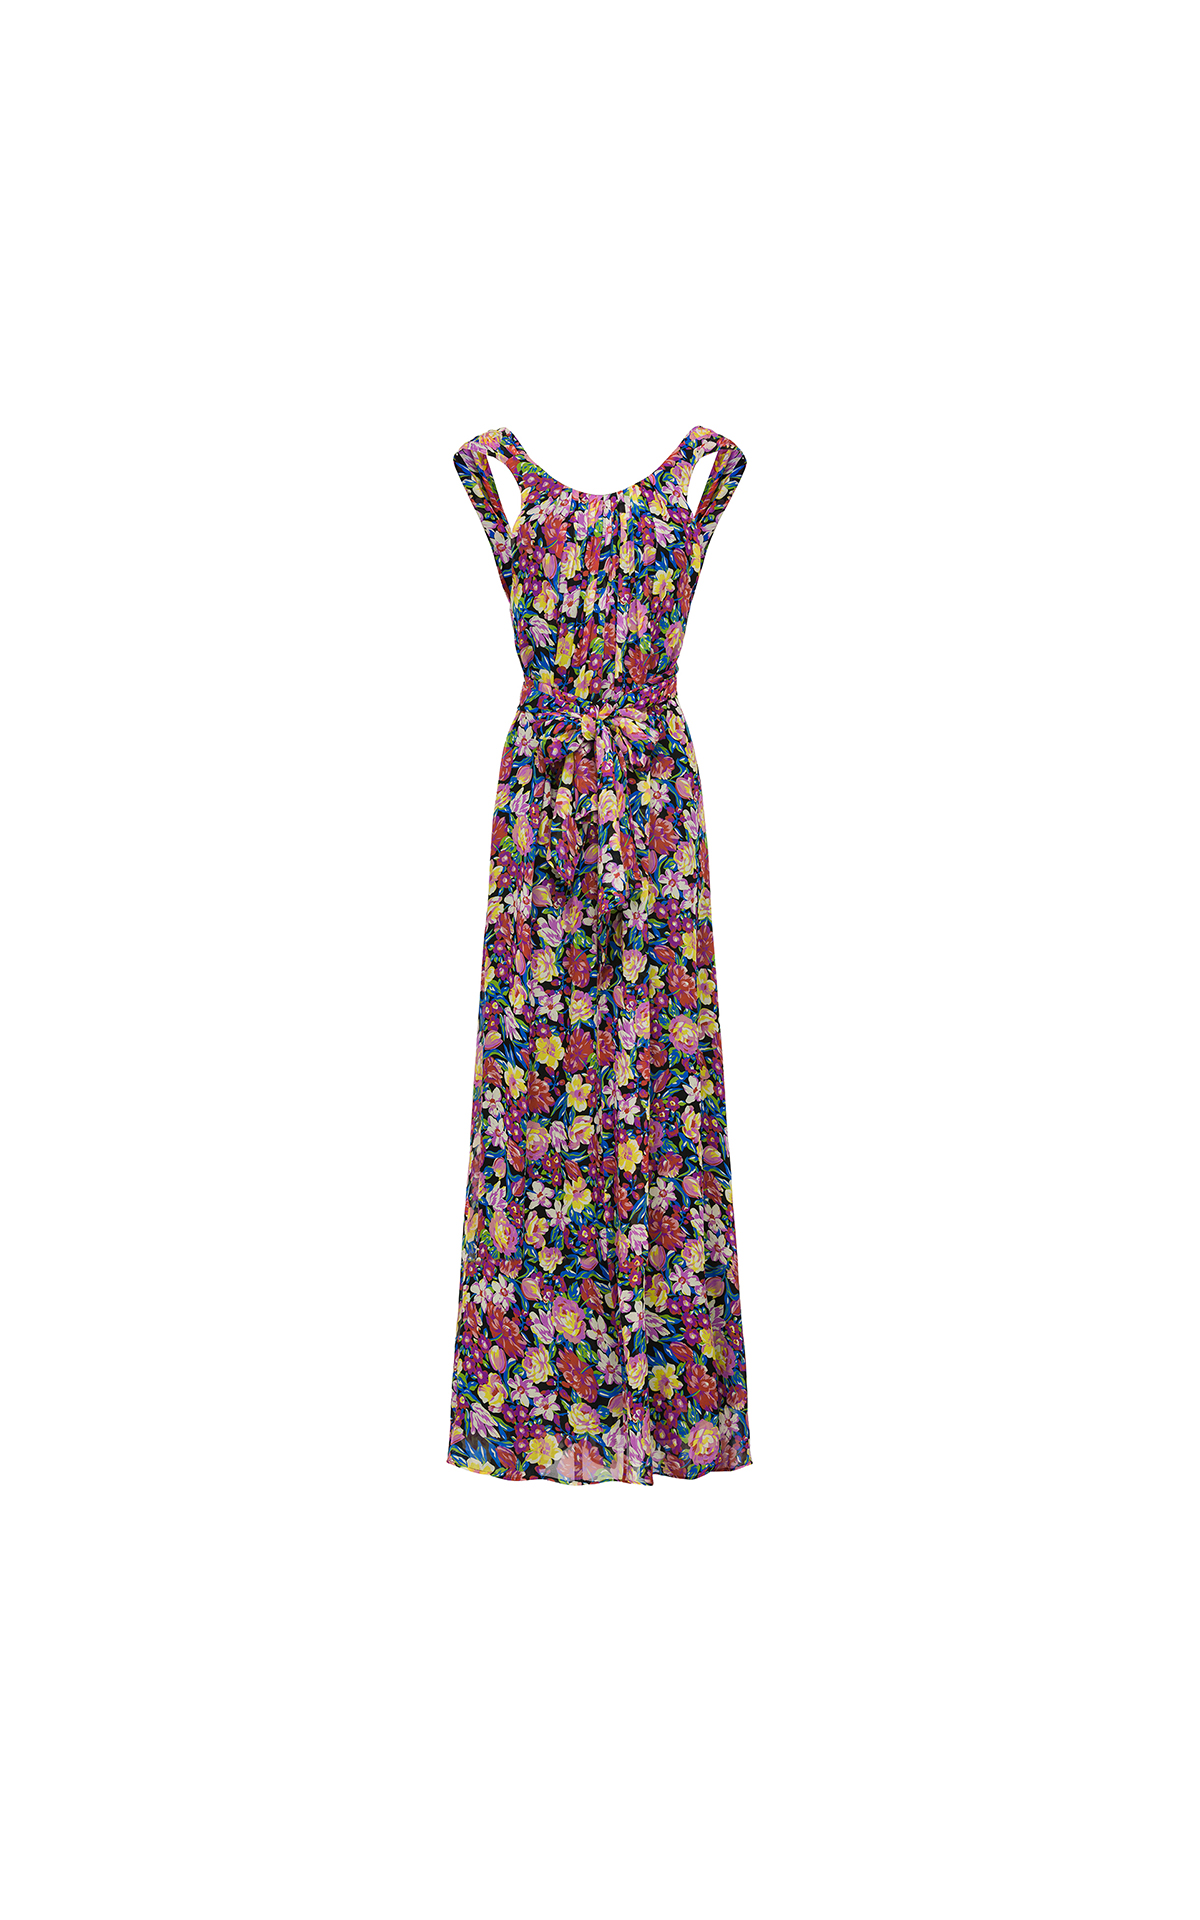 Claudie Pierlot Reese dress at The Bicester Village Shopping Collection